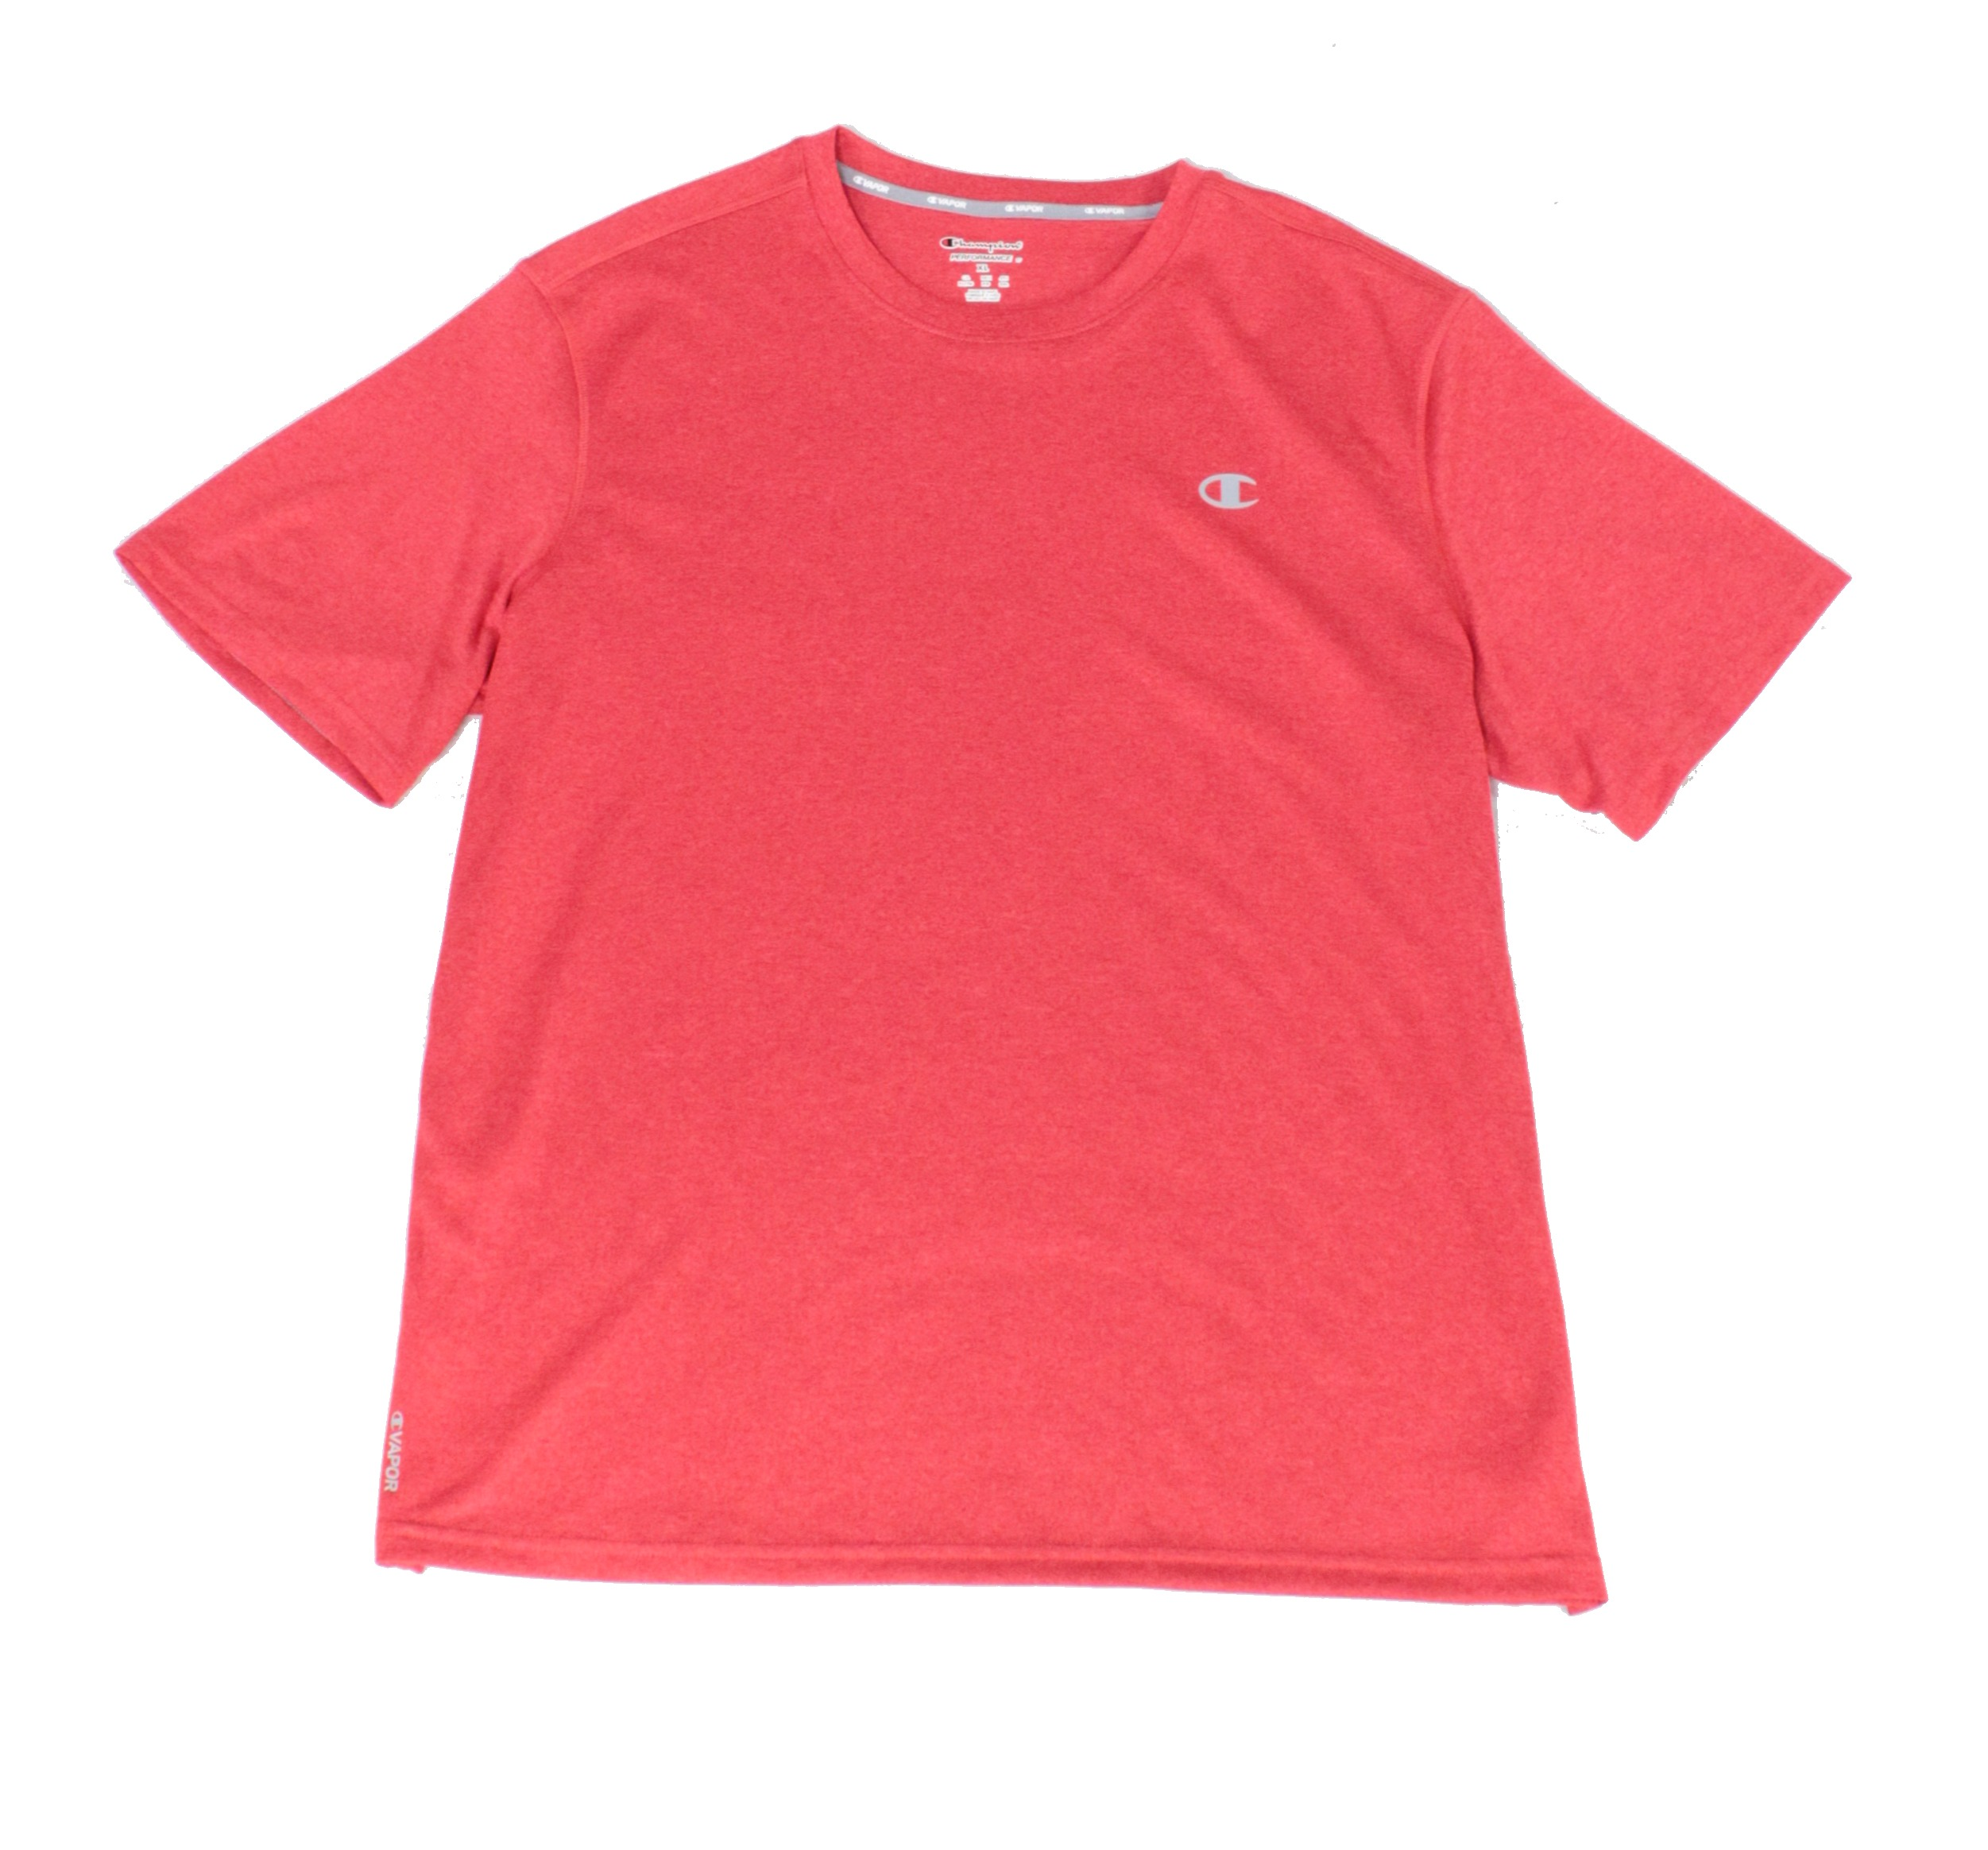 New-Champion-Mens-T-Shirt-Red-Size-XL-Performance-Stretch-Crewneck-Tee-25-111 thumbnail 1